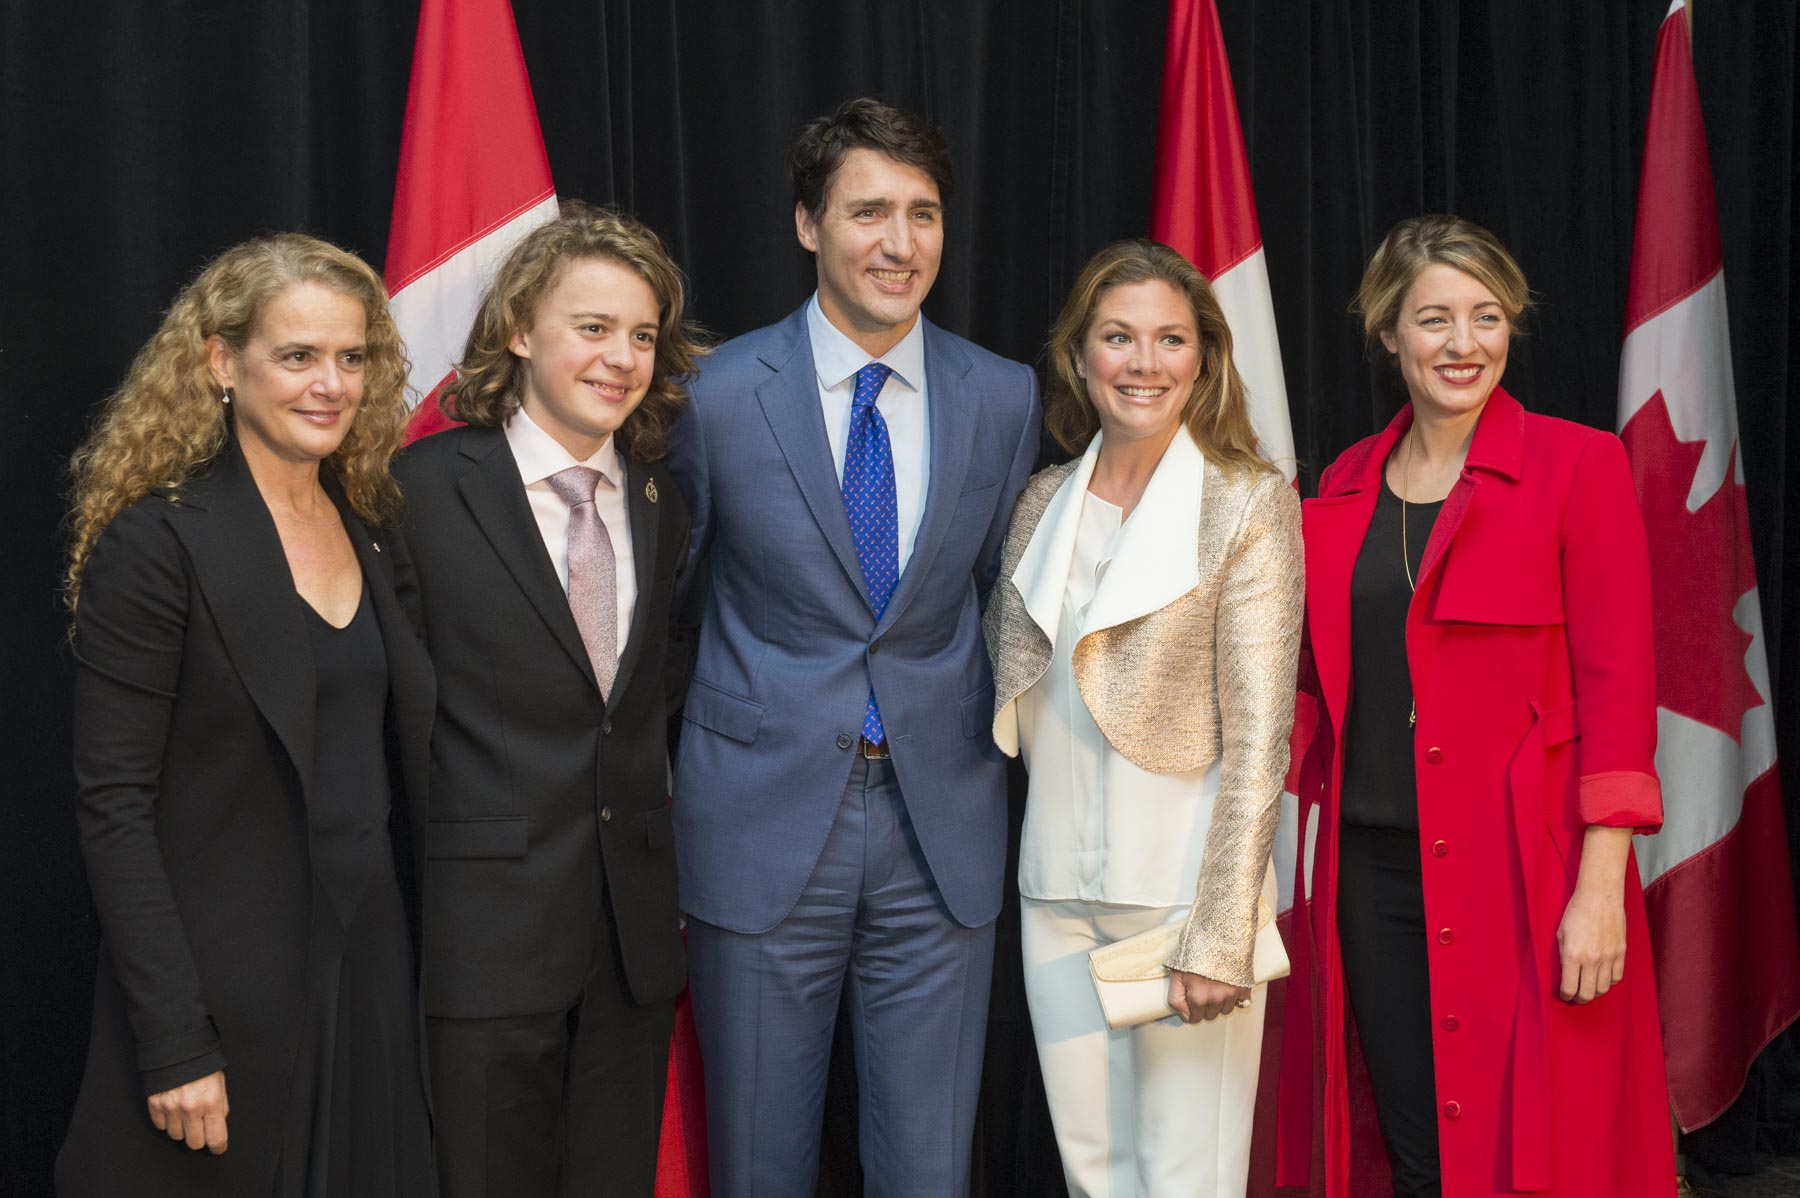 On behalf of the Government of Canada, the Right Honourable Justin Trudeau, Prime Minister of Canada, accompanied by his spouse Sophie Grégoire Trudeau (right), and the Honourable Mélanie Joly, Minister of Canadian Heritage (far right), hosted a reception honour of Her Excellency Julie Payette's installation as Canada's 29th governor general on October 2, 2017. Her Excellency was accompanied by her 14-year old son Laurier.